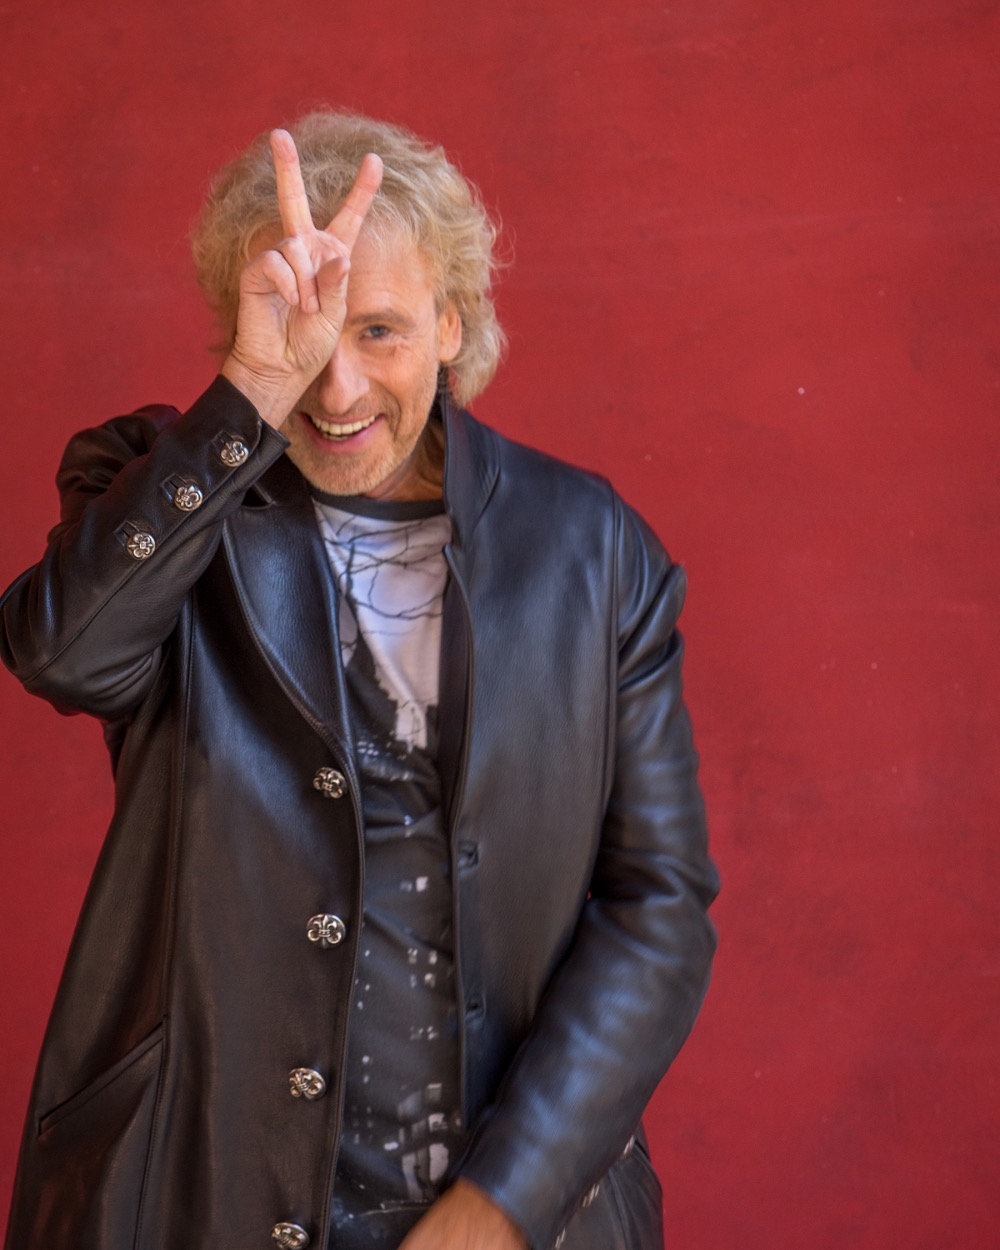 Thomas Gottschalk, Entertainer